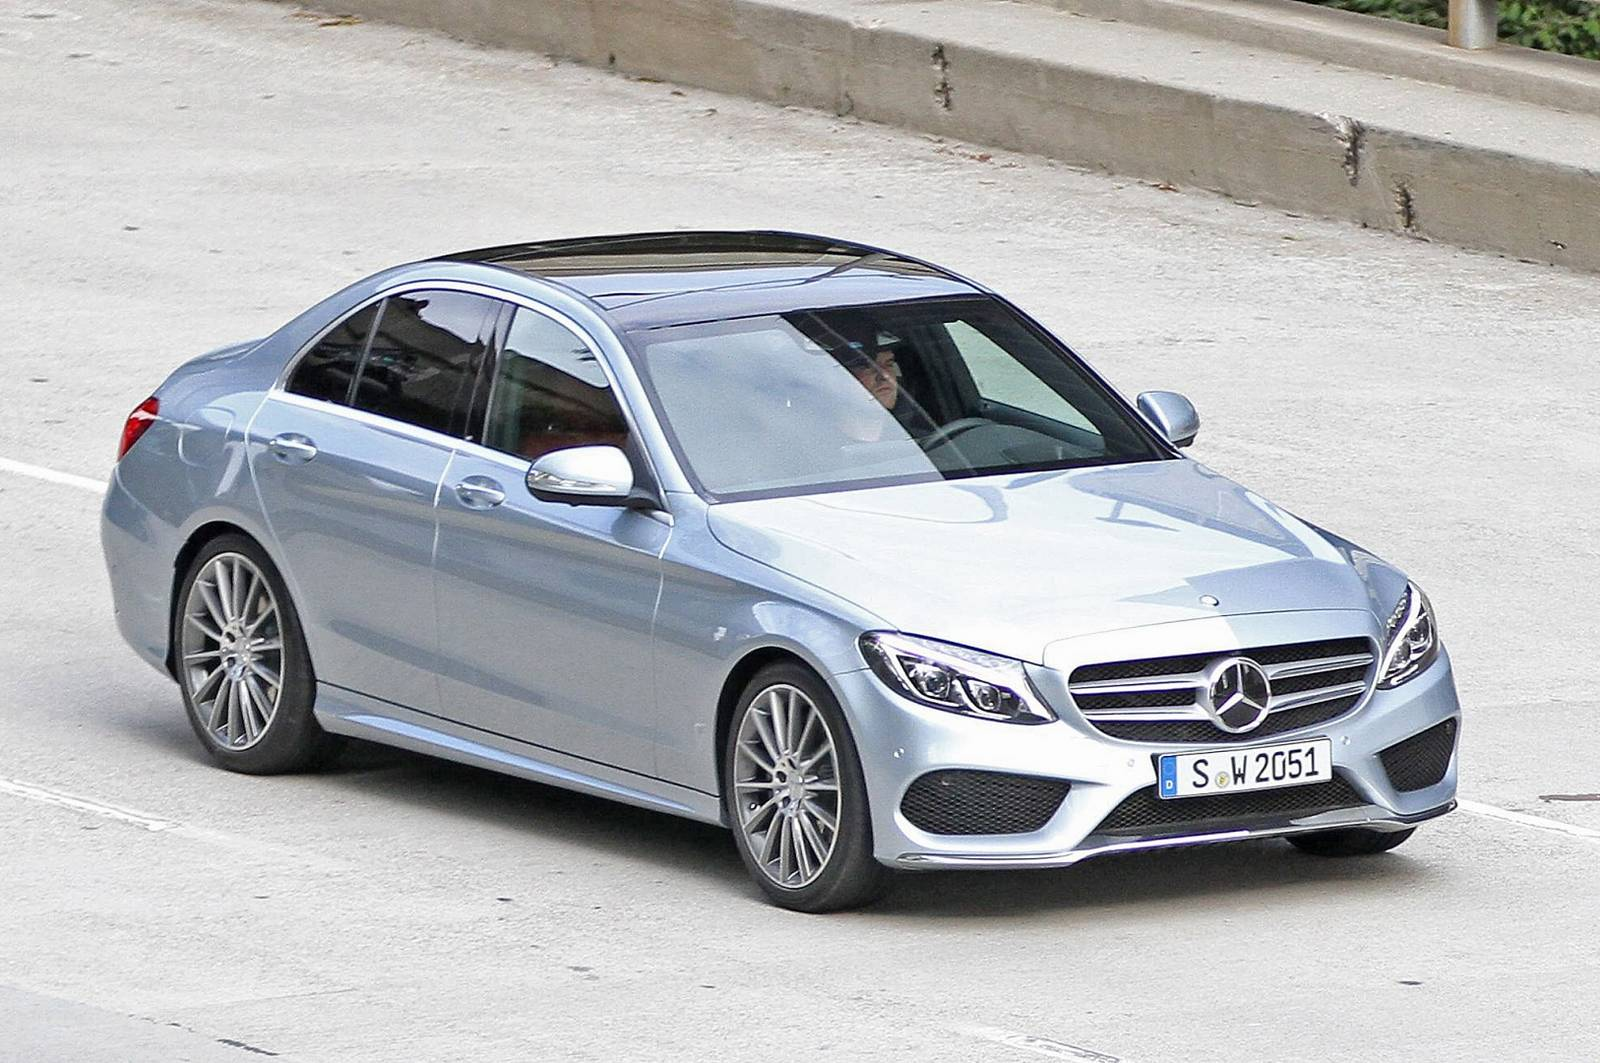 2015 mercedes benz c class spied uncovered gtspirit. Cars Review. Best American Auto & Cars Review